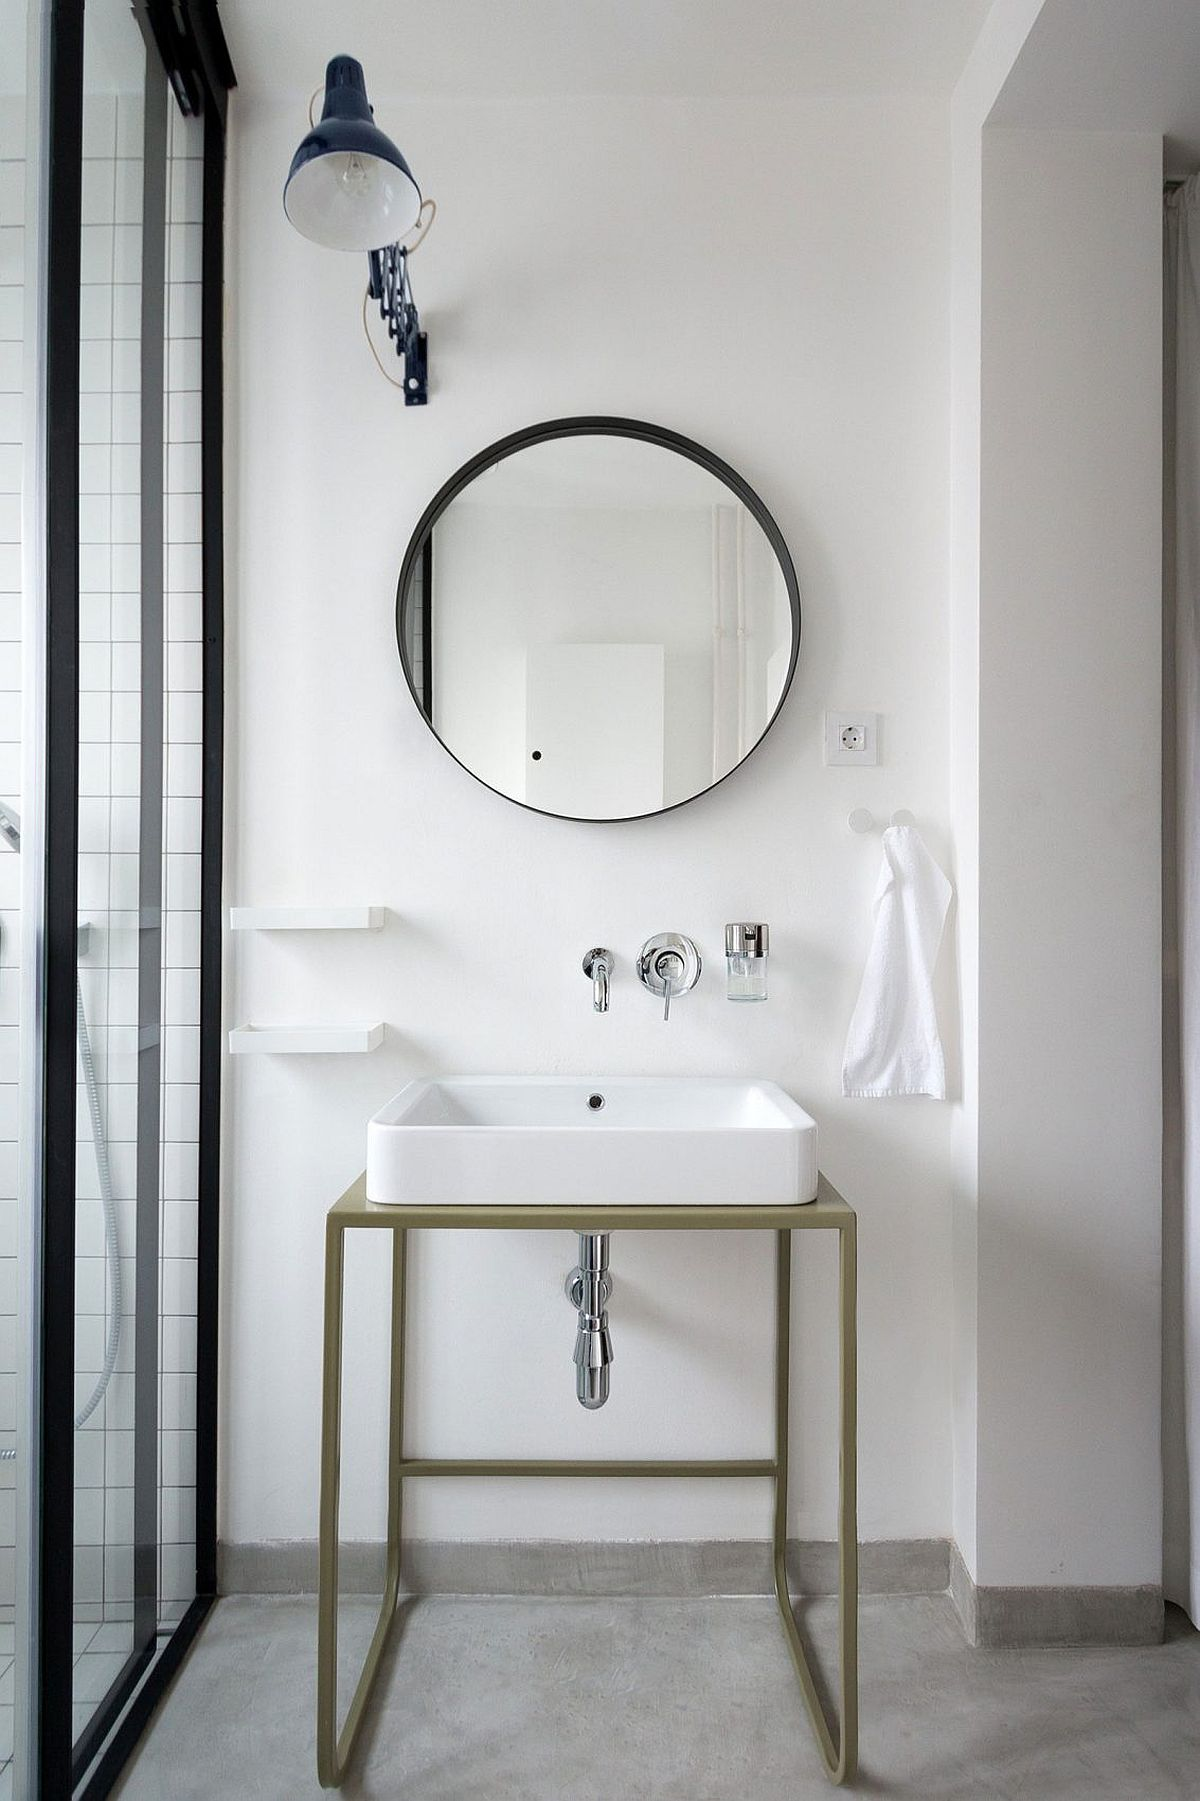 Minimal sink and vanity design with mirror above it